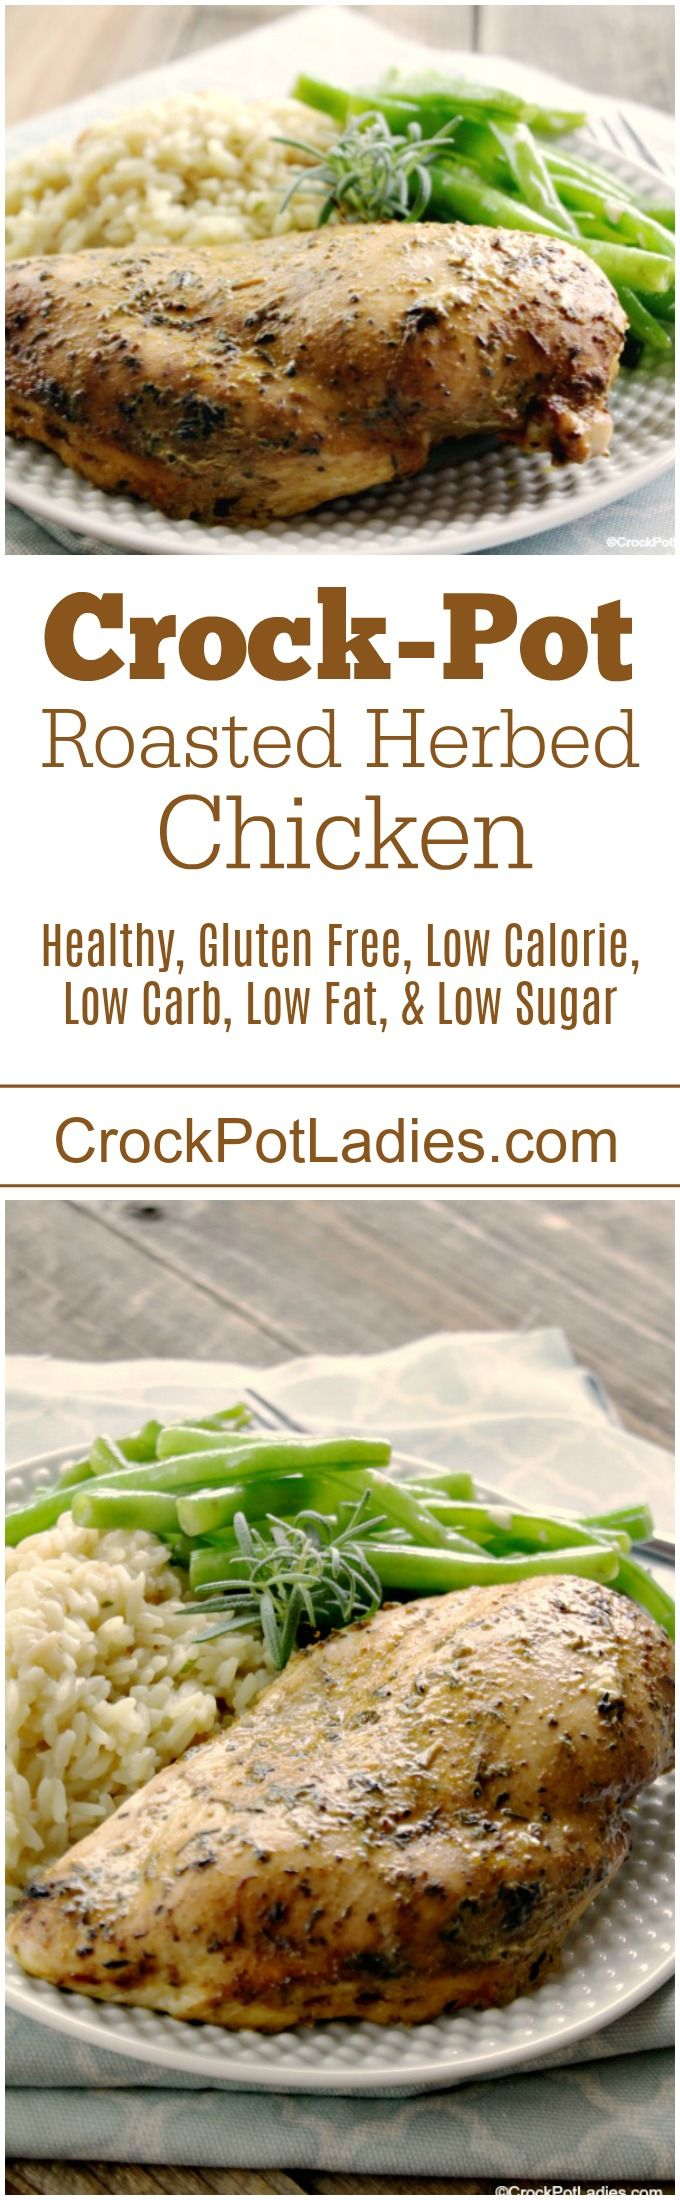 Crock-Pot Roasted Herbed Chicken - No one will believe that this chicken was cooked in the slow cooker! This recipe for Crock-Pot Roasted Herbed Chicken is super easy and good for you too! Serve the roasted chicken for dinner or shred or cut up the chicken and use in any recipe that calls for cooked rotisserie chicken meat! {Healthy, Gluten Free, Low Calorie, Low Carb, Low Fat, & Low Sugar} via @CrockPotLadies